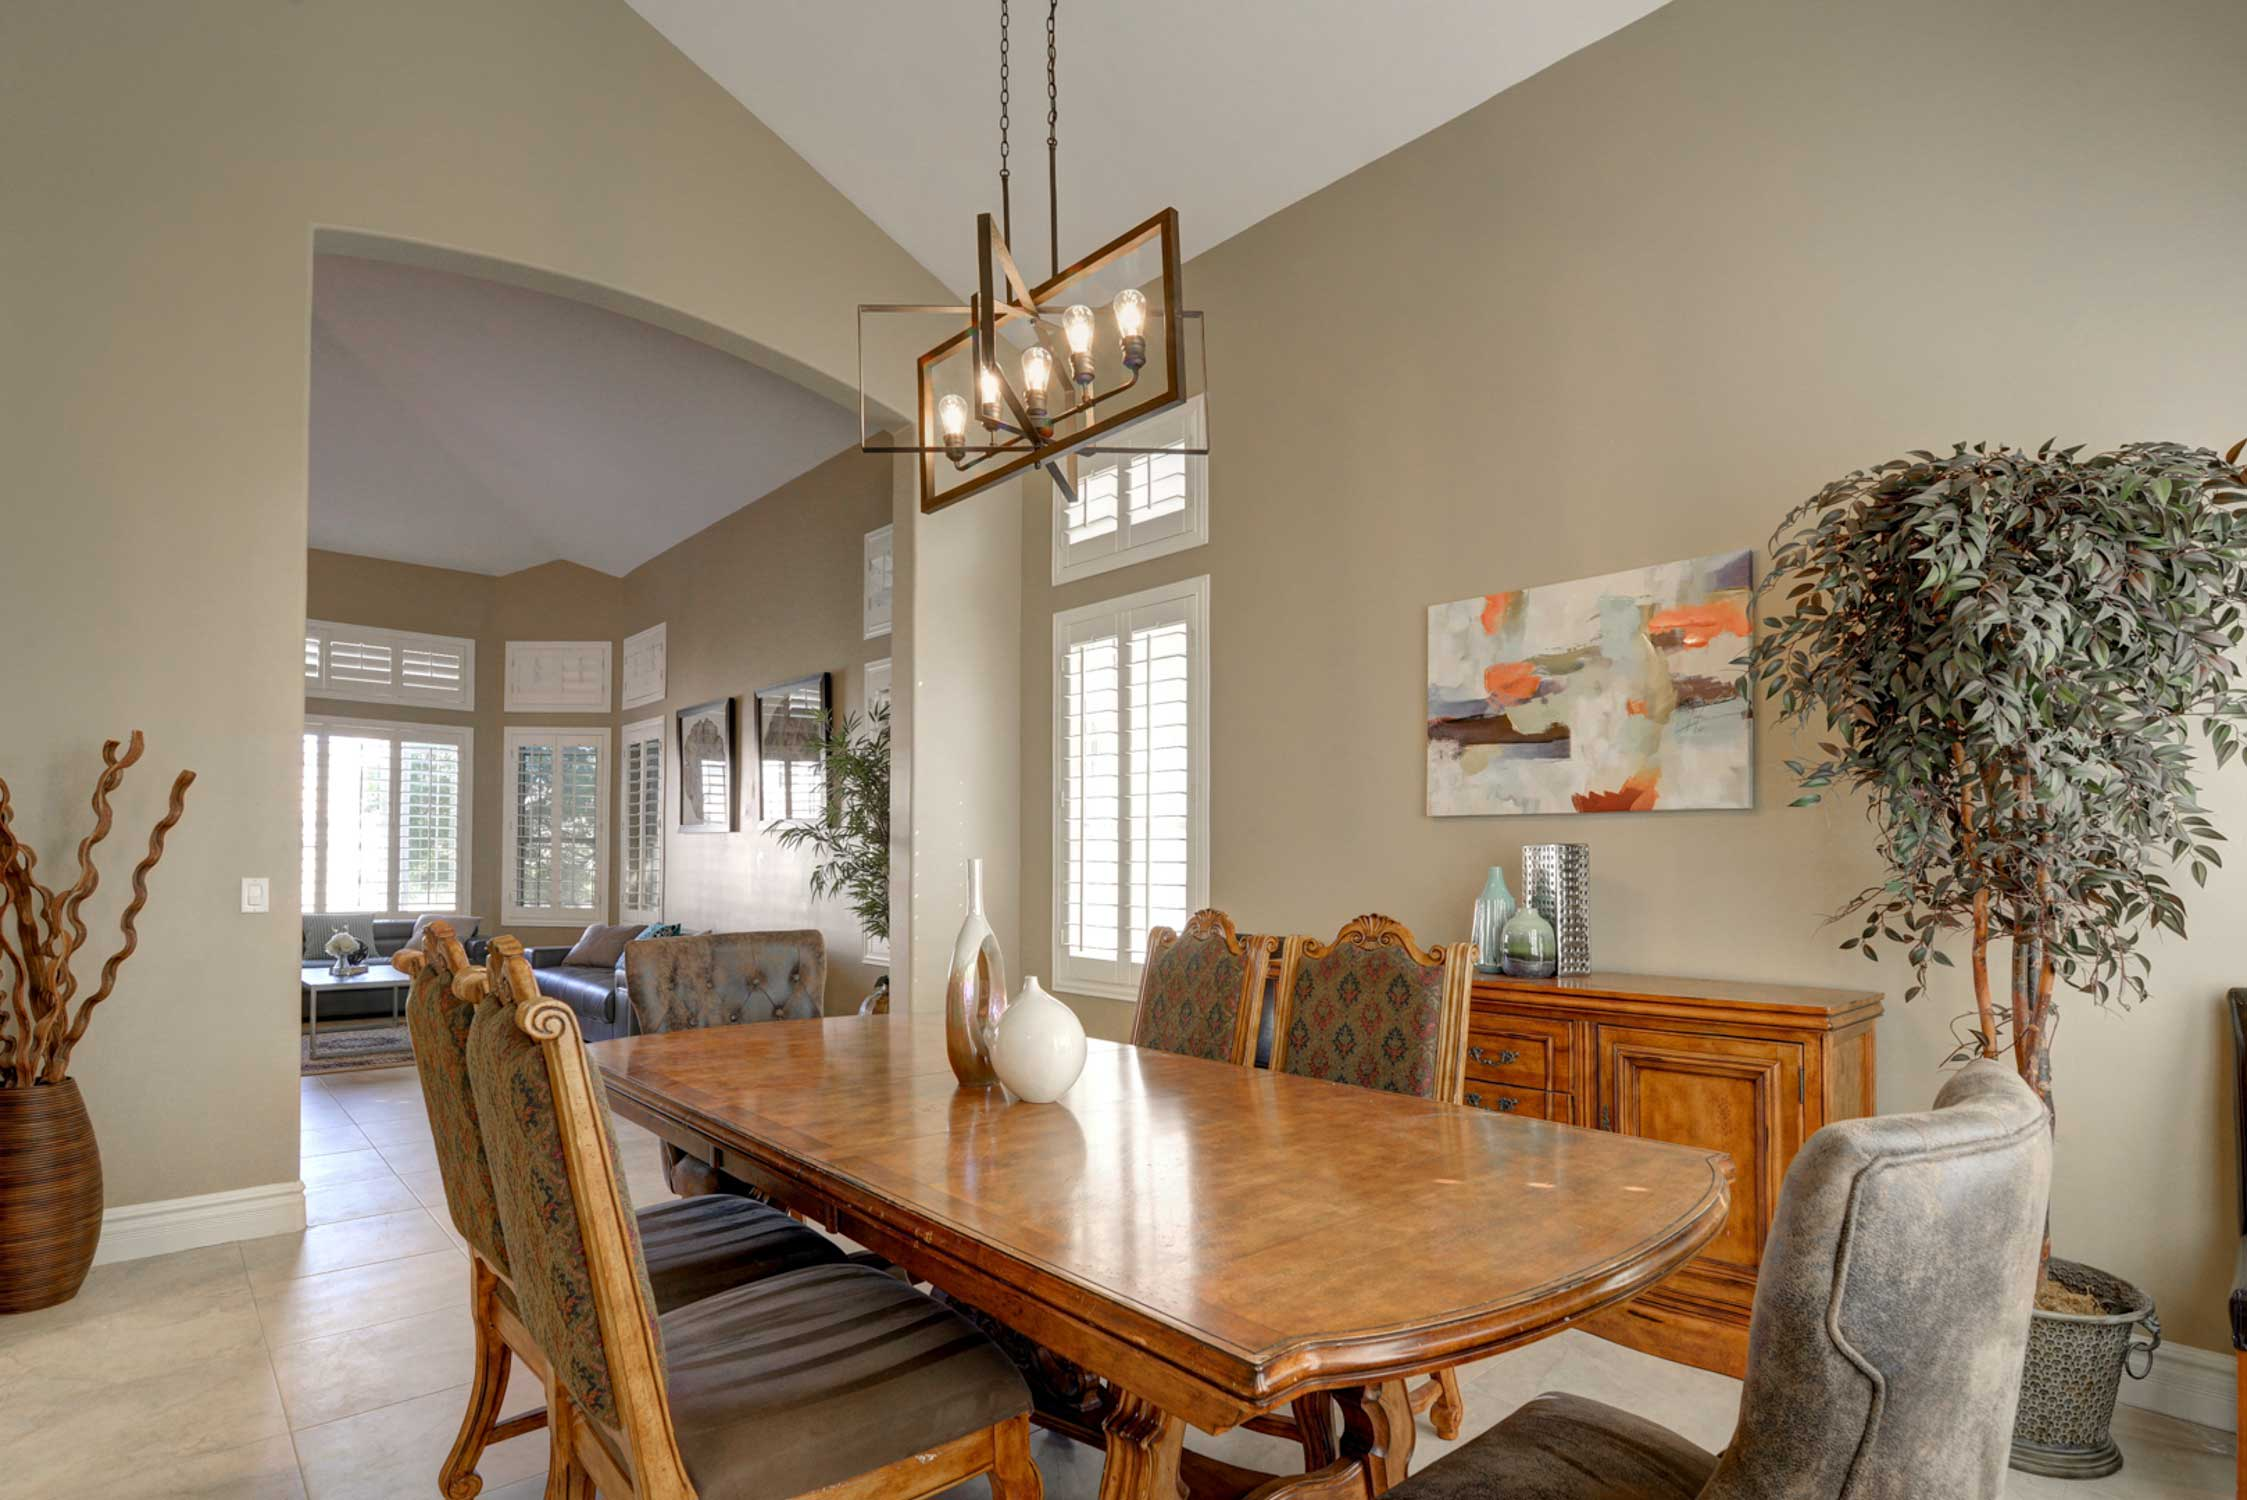 Enjoy modern and luxurious amenities - including this elegant dining table!